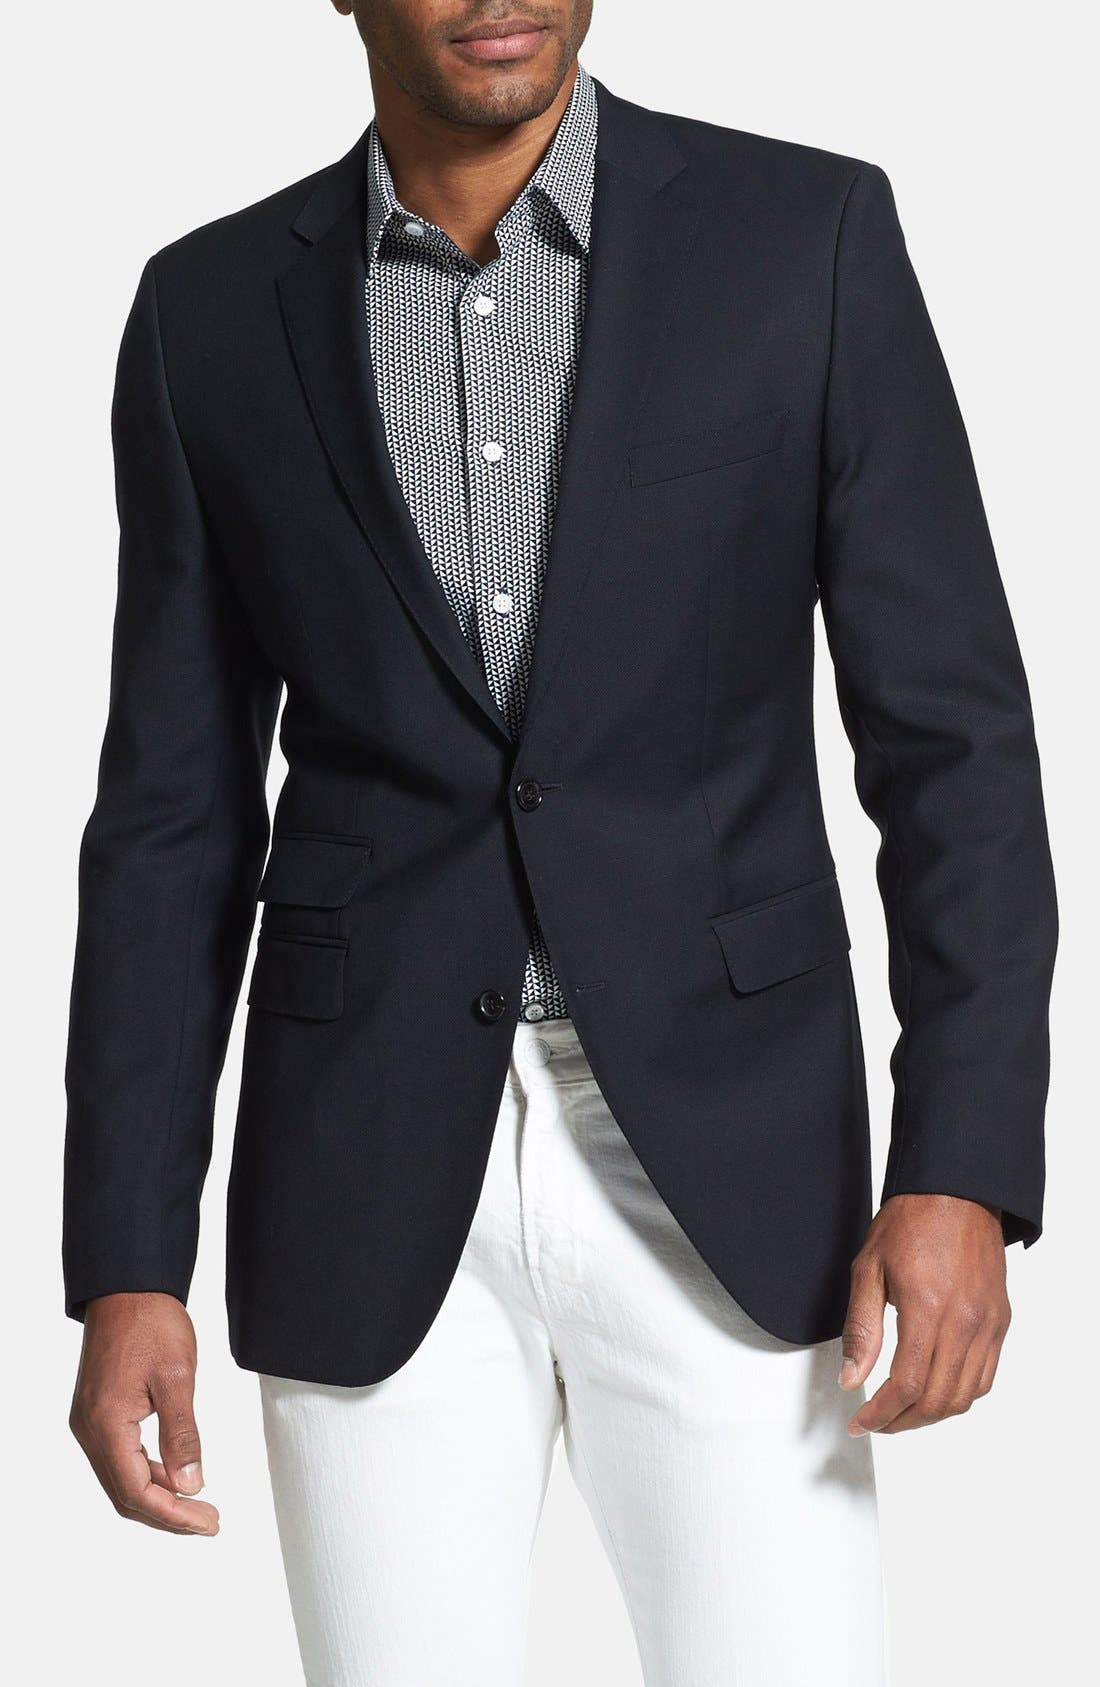 Alternate Image 1 Selected - BOSS HUGO BOSS 'The Sweet' Trim Fit Blazer